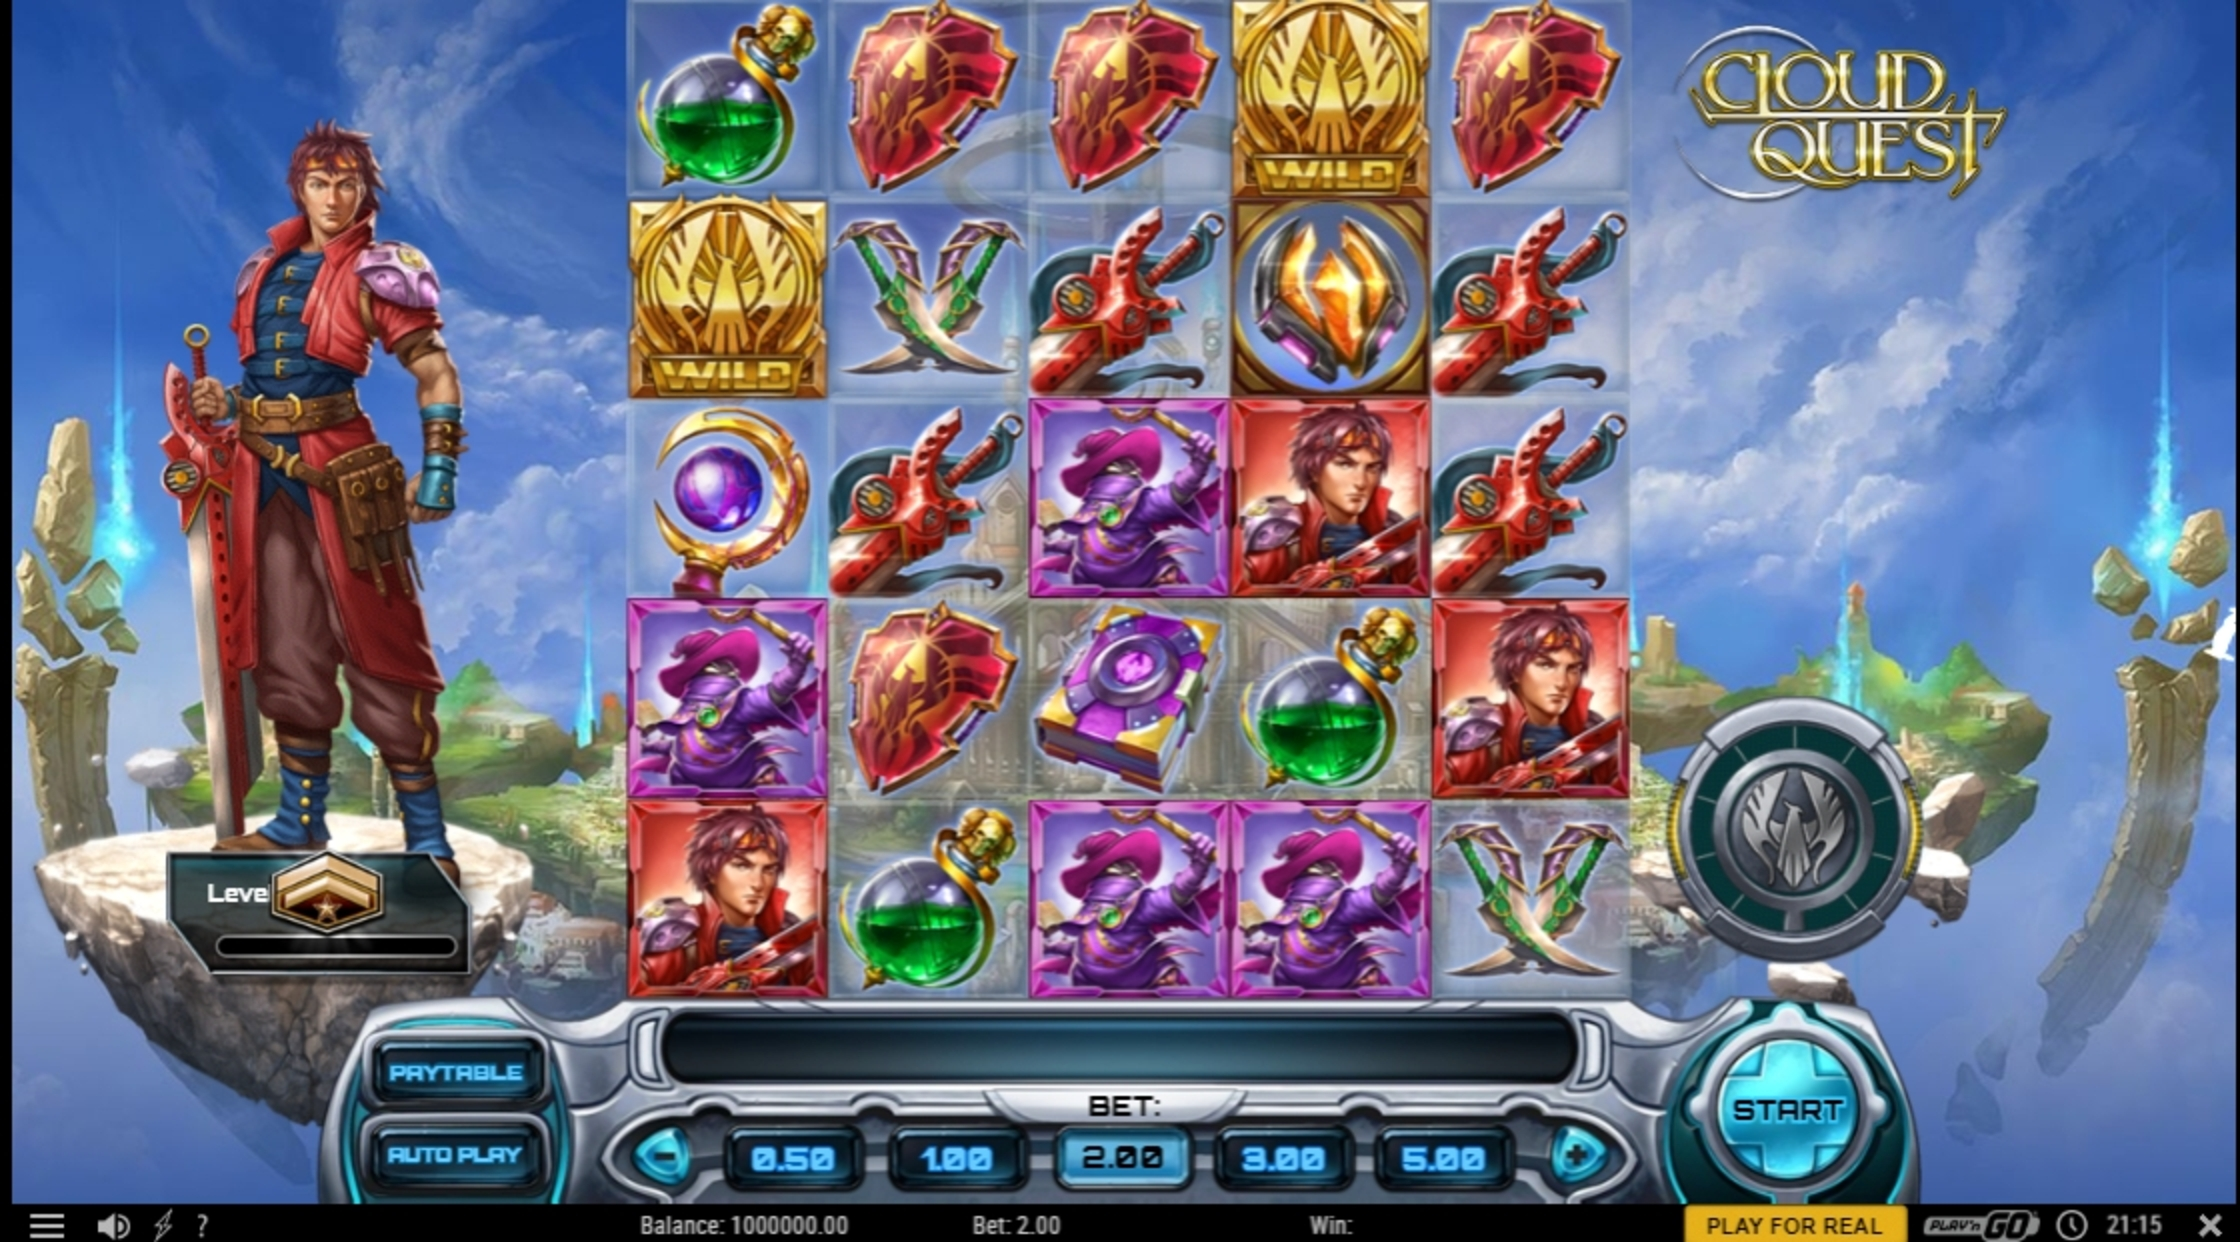 Reels in Cloud Quest Slot Game by Play'n Go